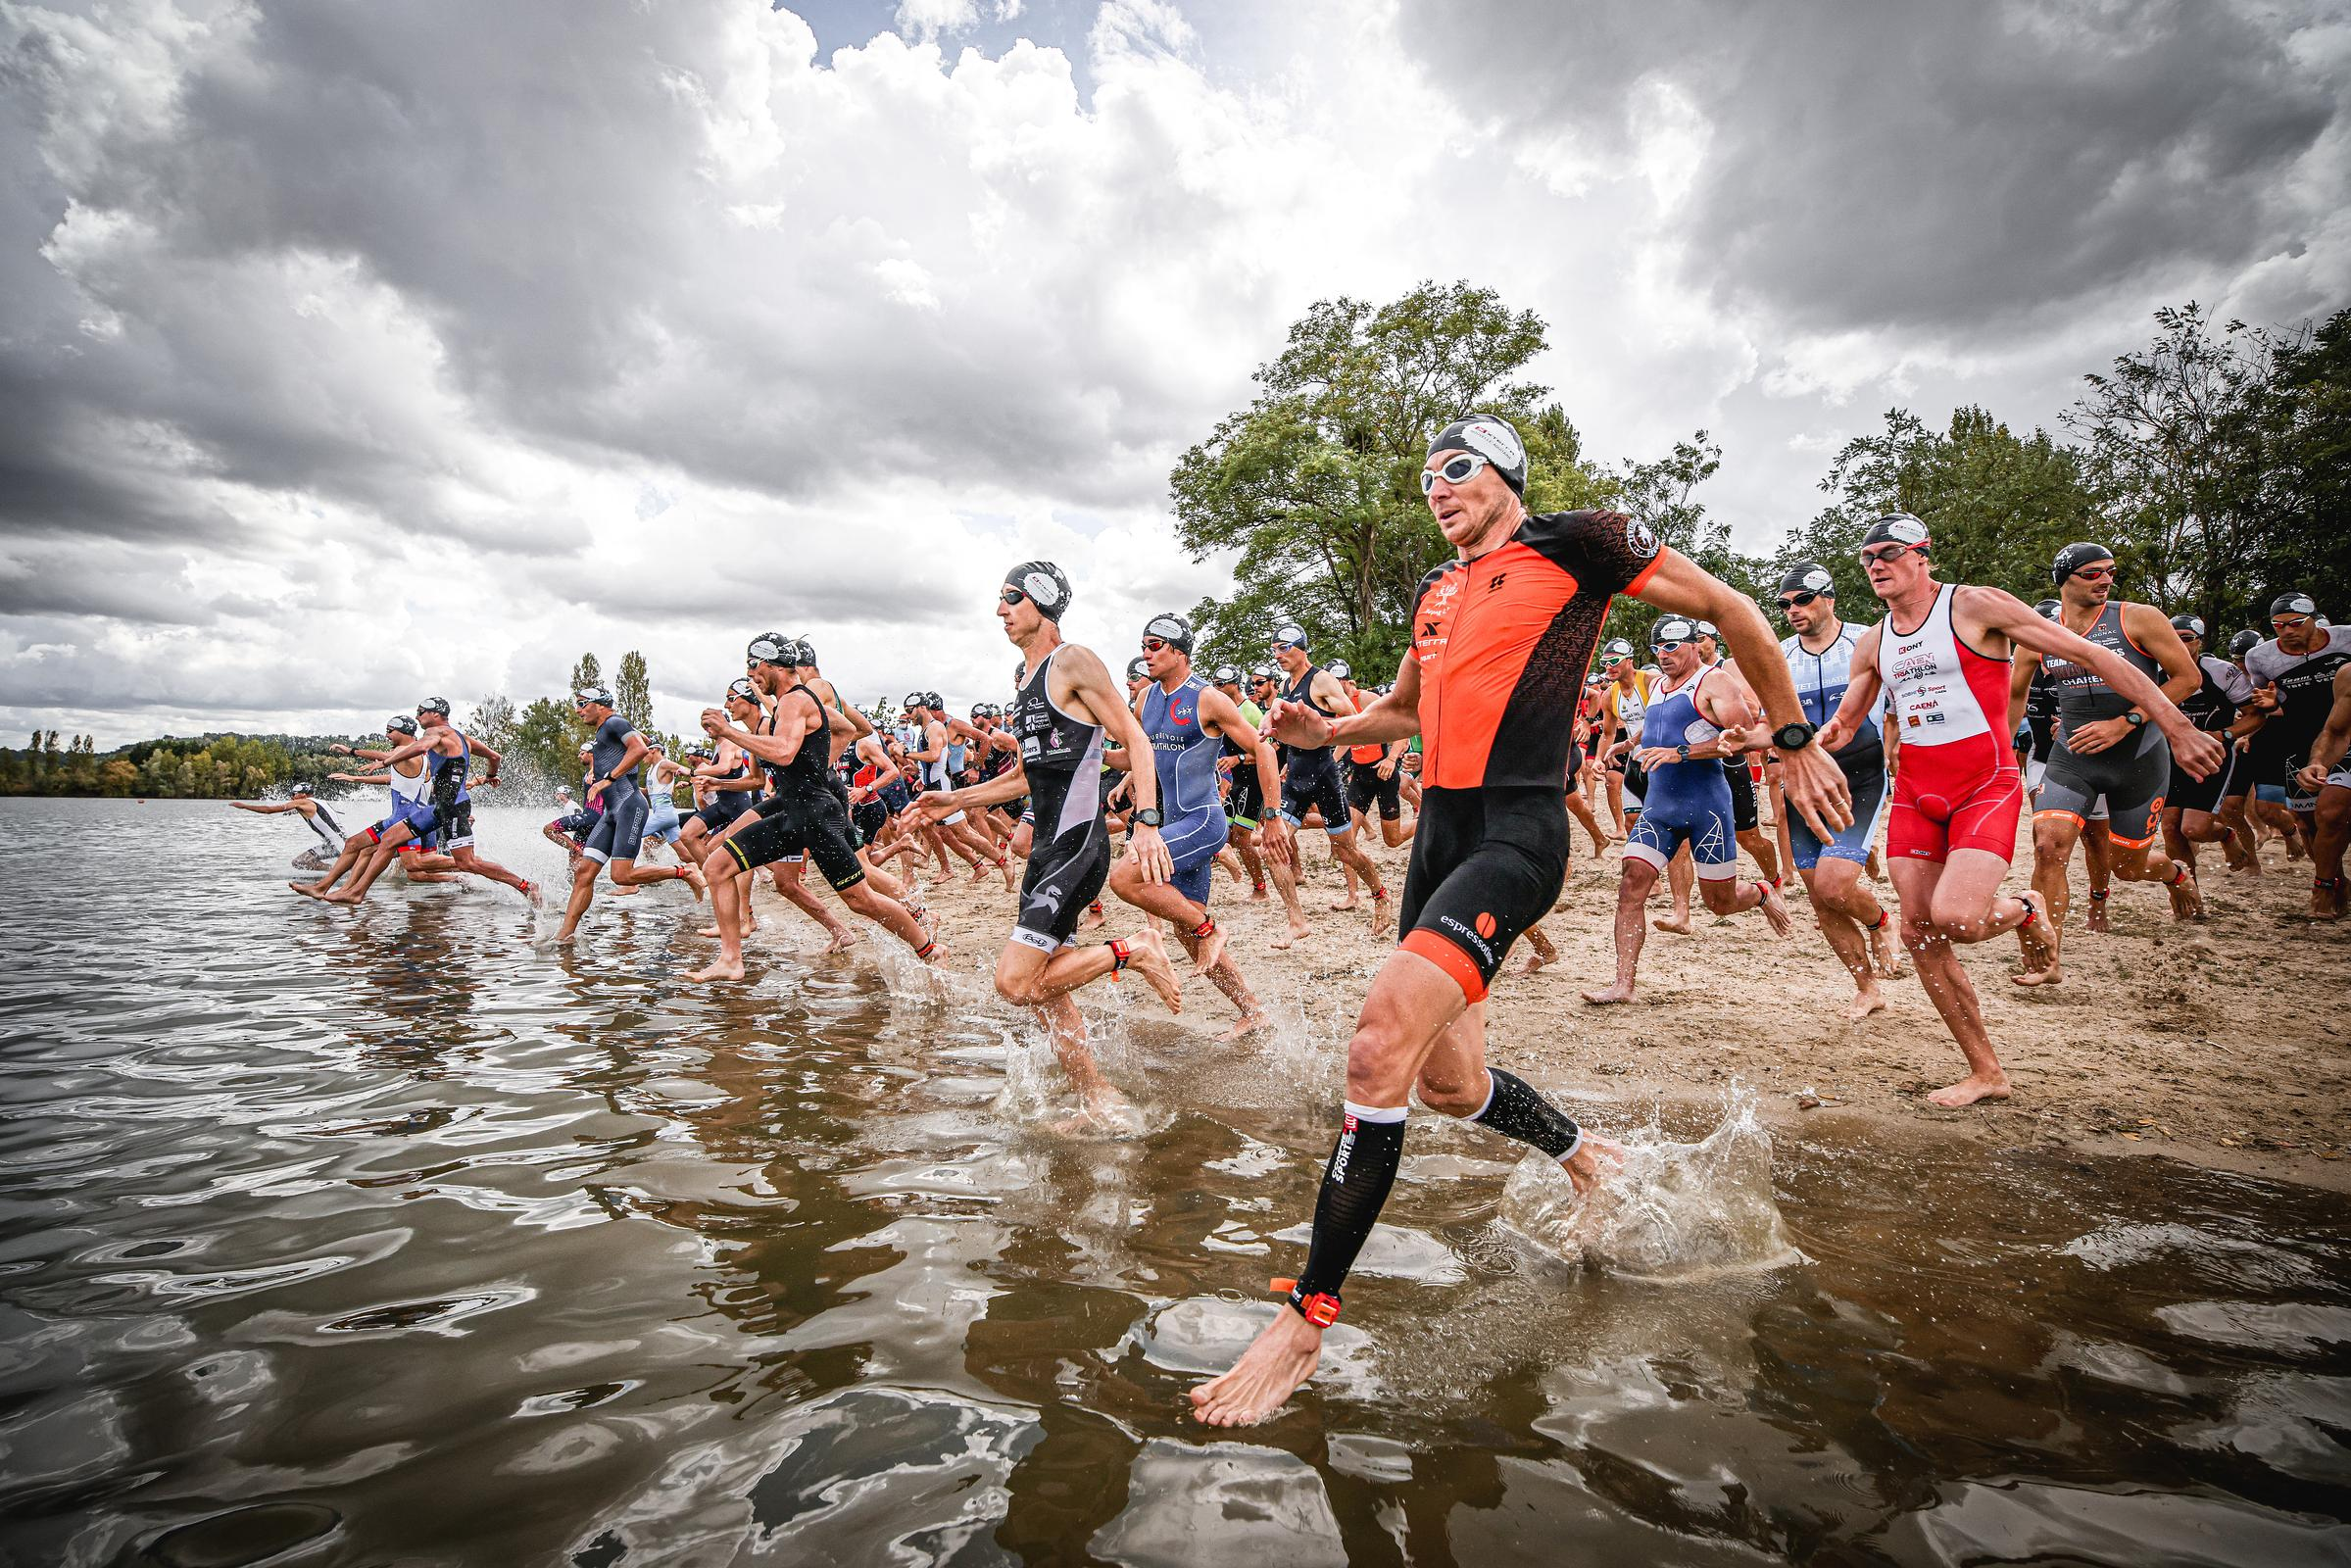 Xterra aquitaine 2020 en photos